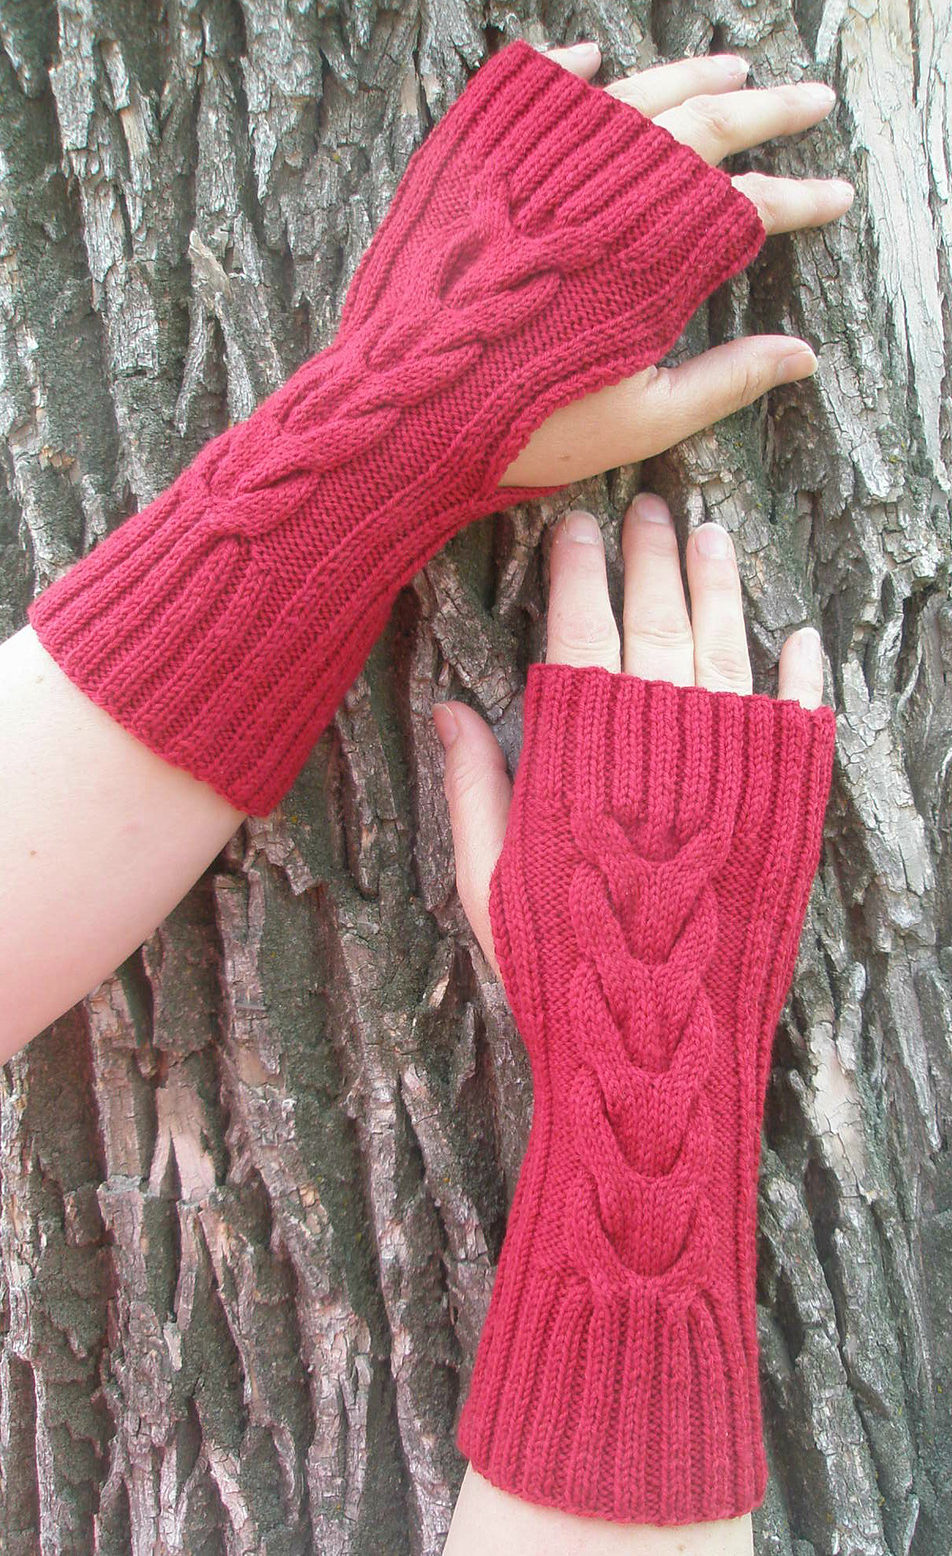 Knitting Pattern for Easy Lucky Horseshoe Hand Warmers